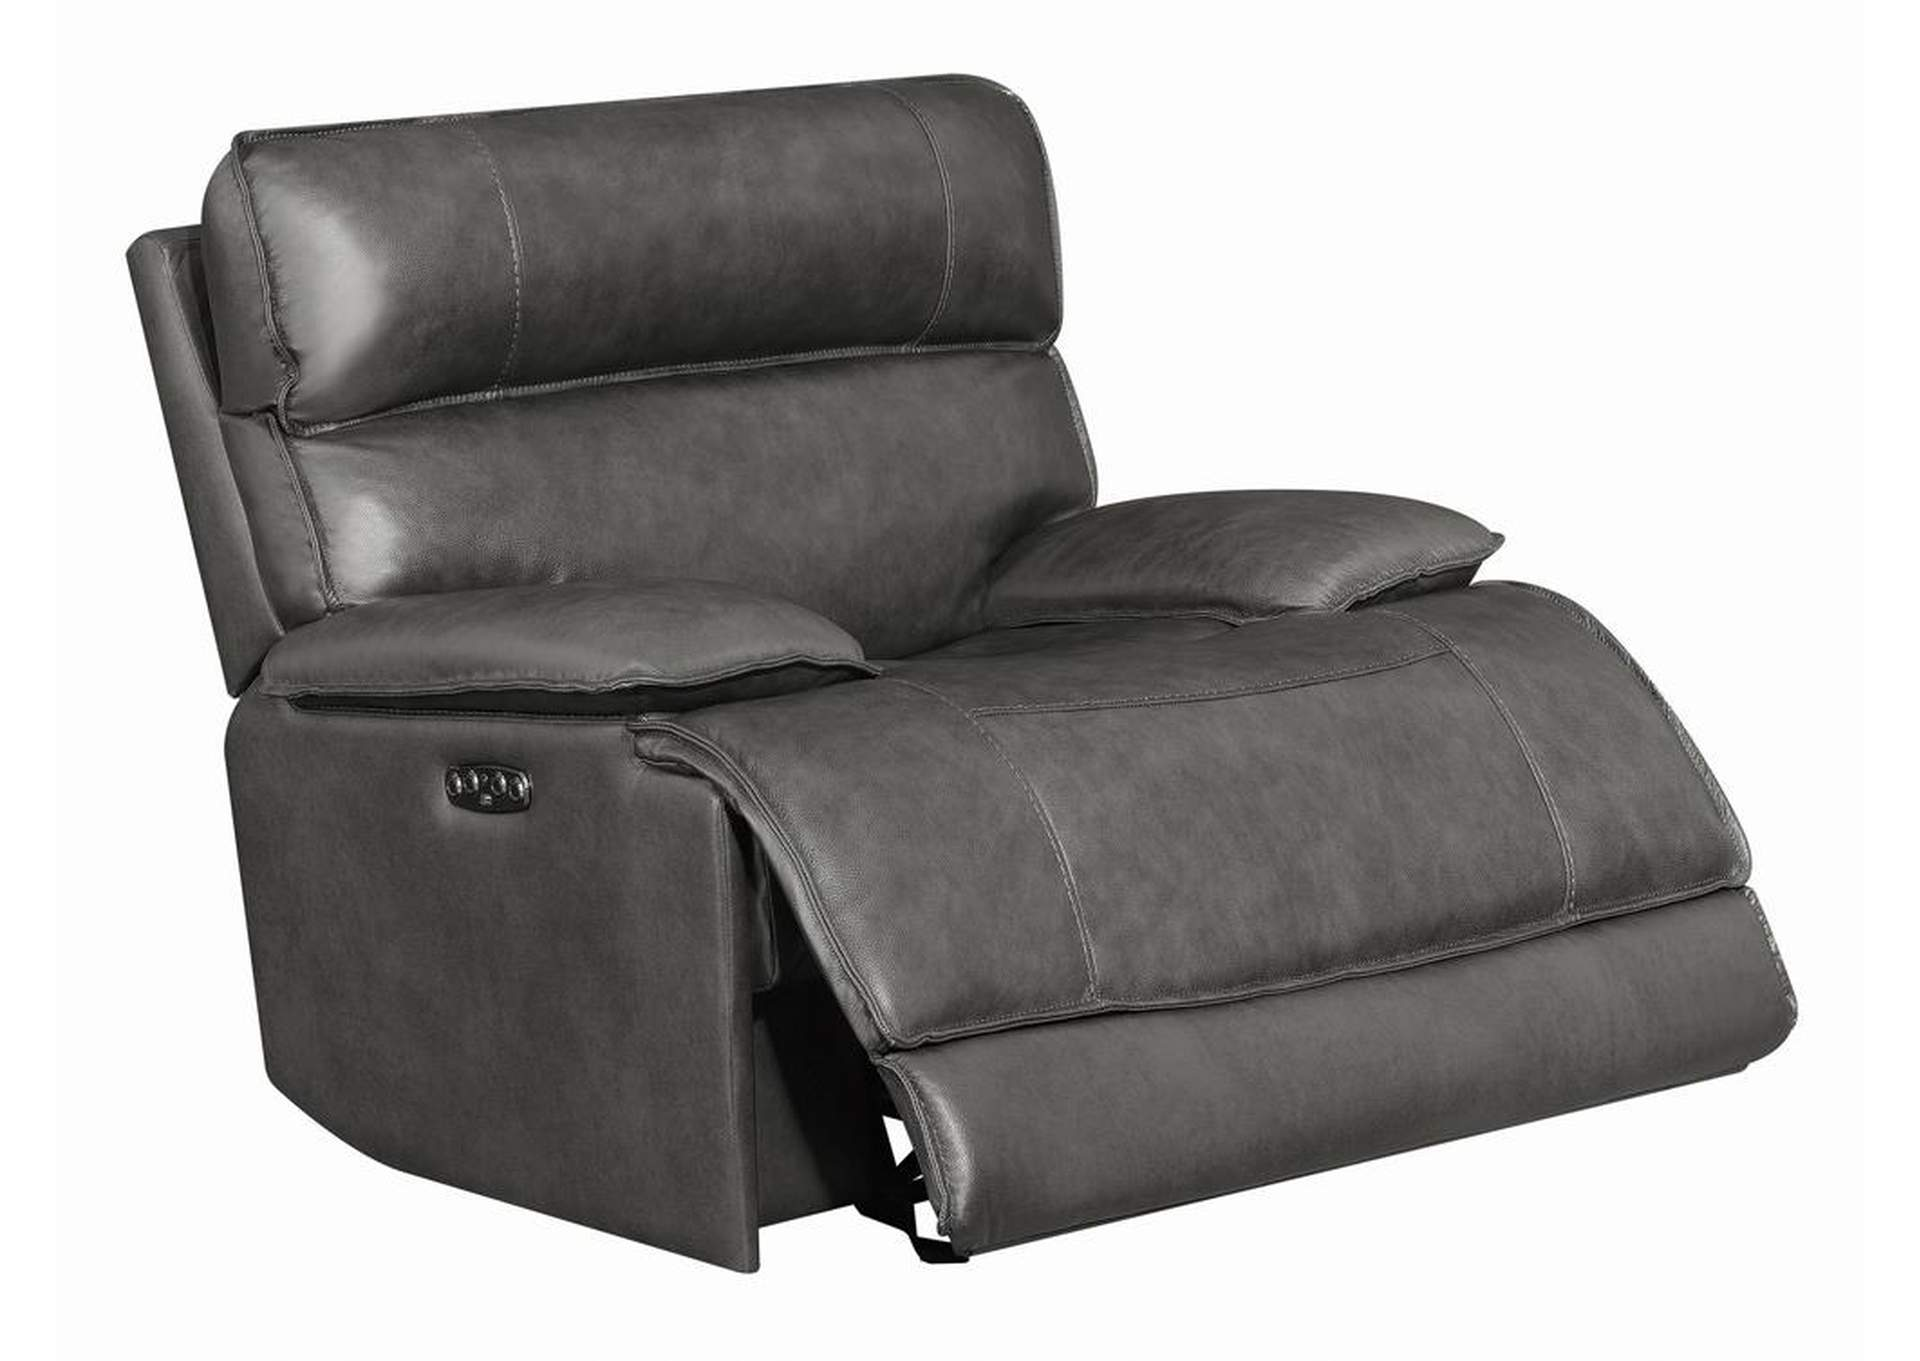 Stanford Charcoal Power Glider Recliner,Coaster Furniture